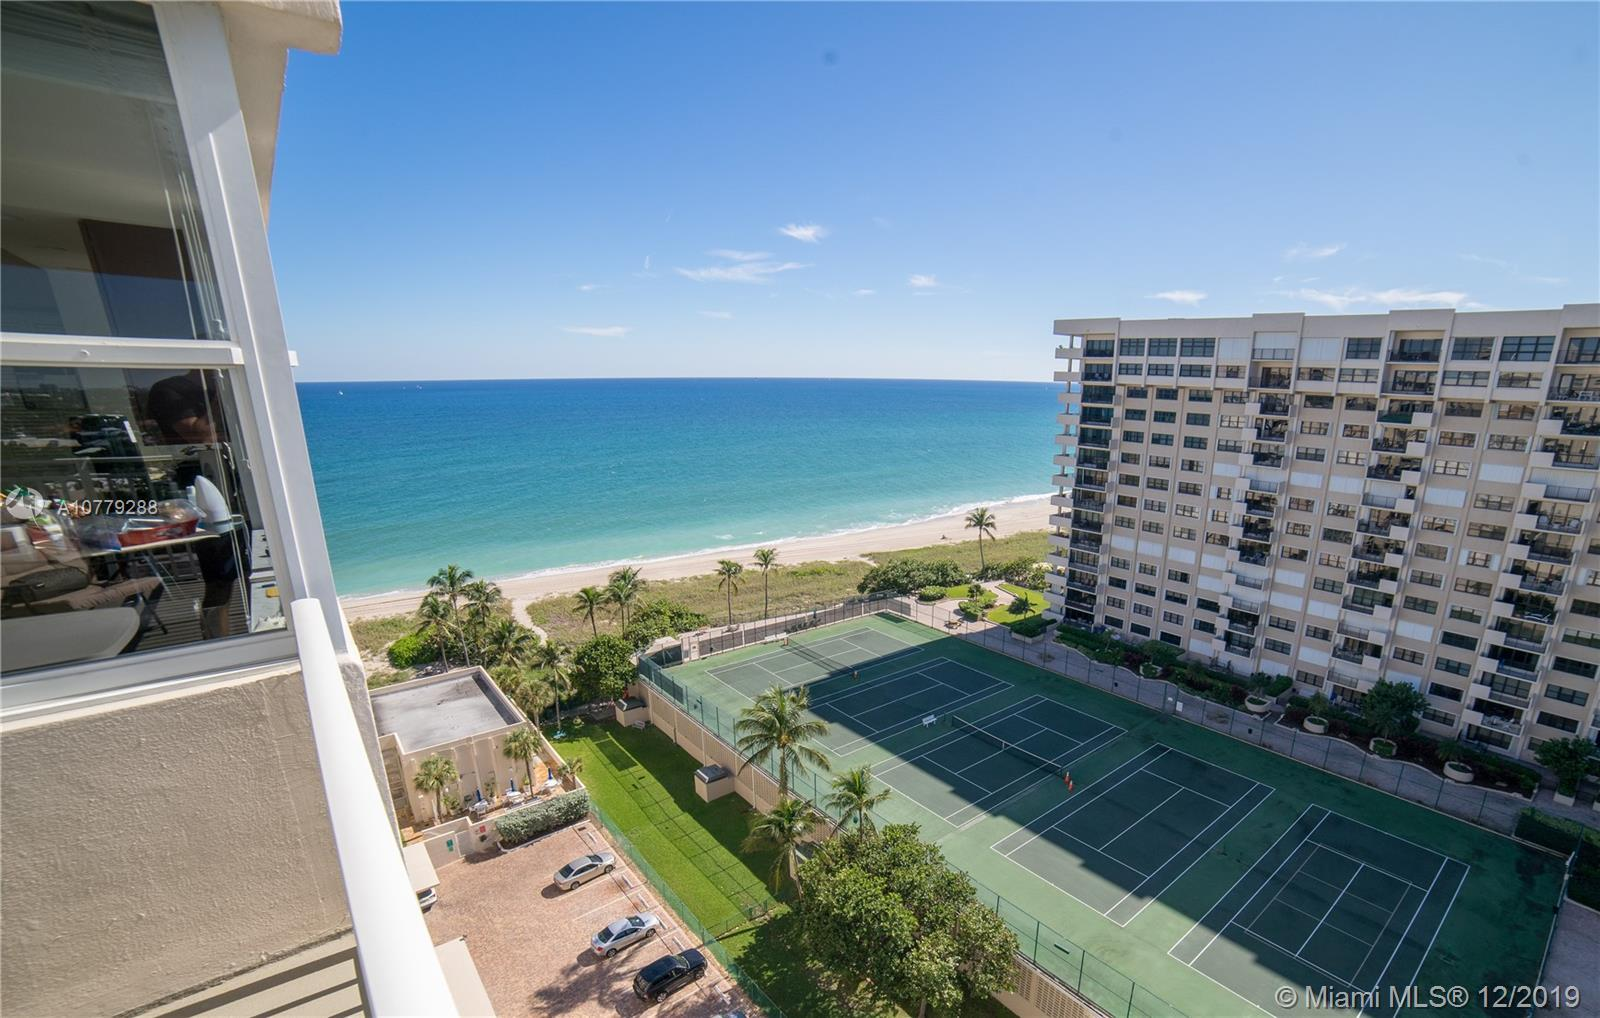 PERFECT LOCATION! INVESTORS ONLY - Walk in the white sands and enjoy the peace and tranquility of th